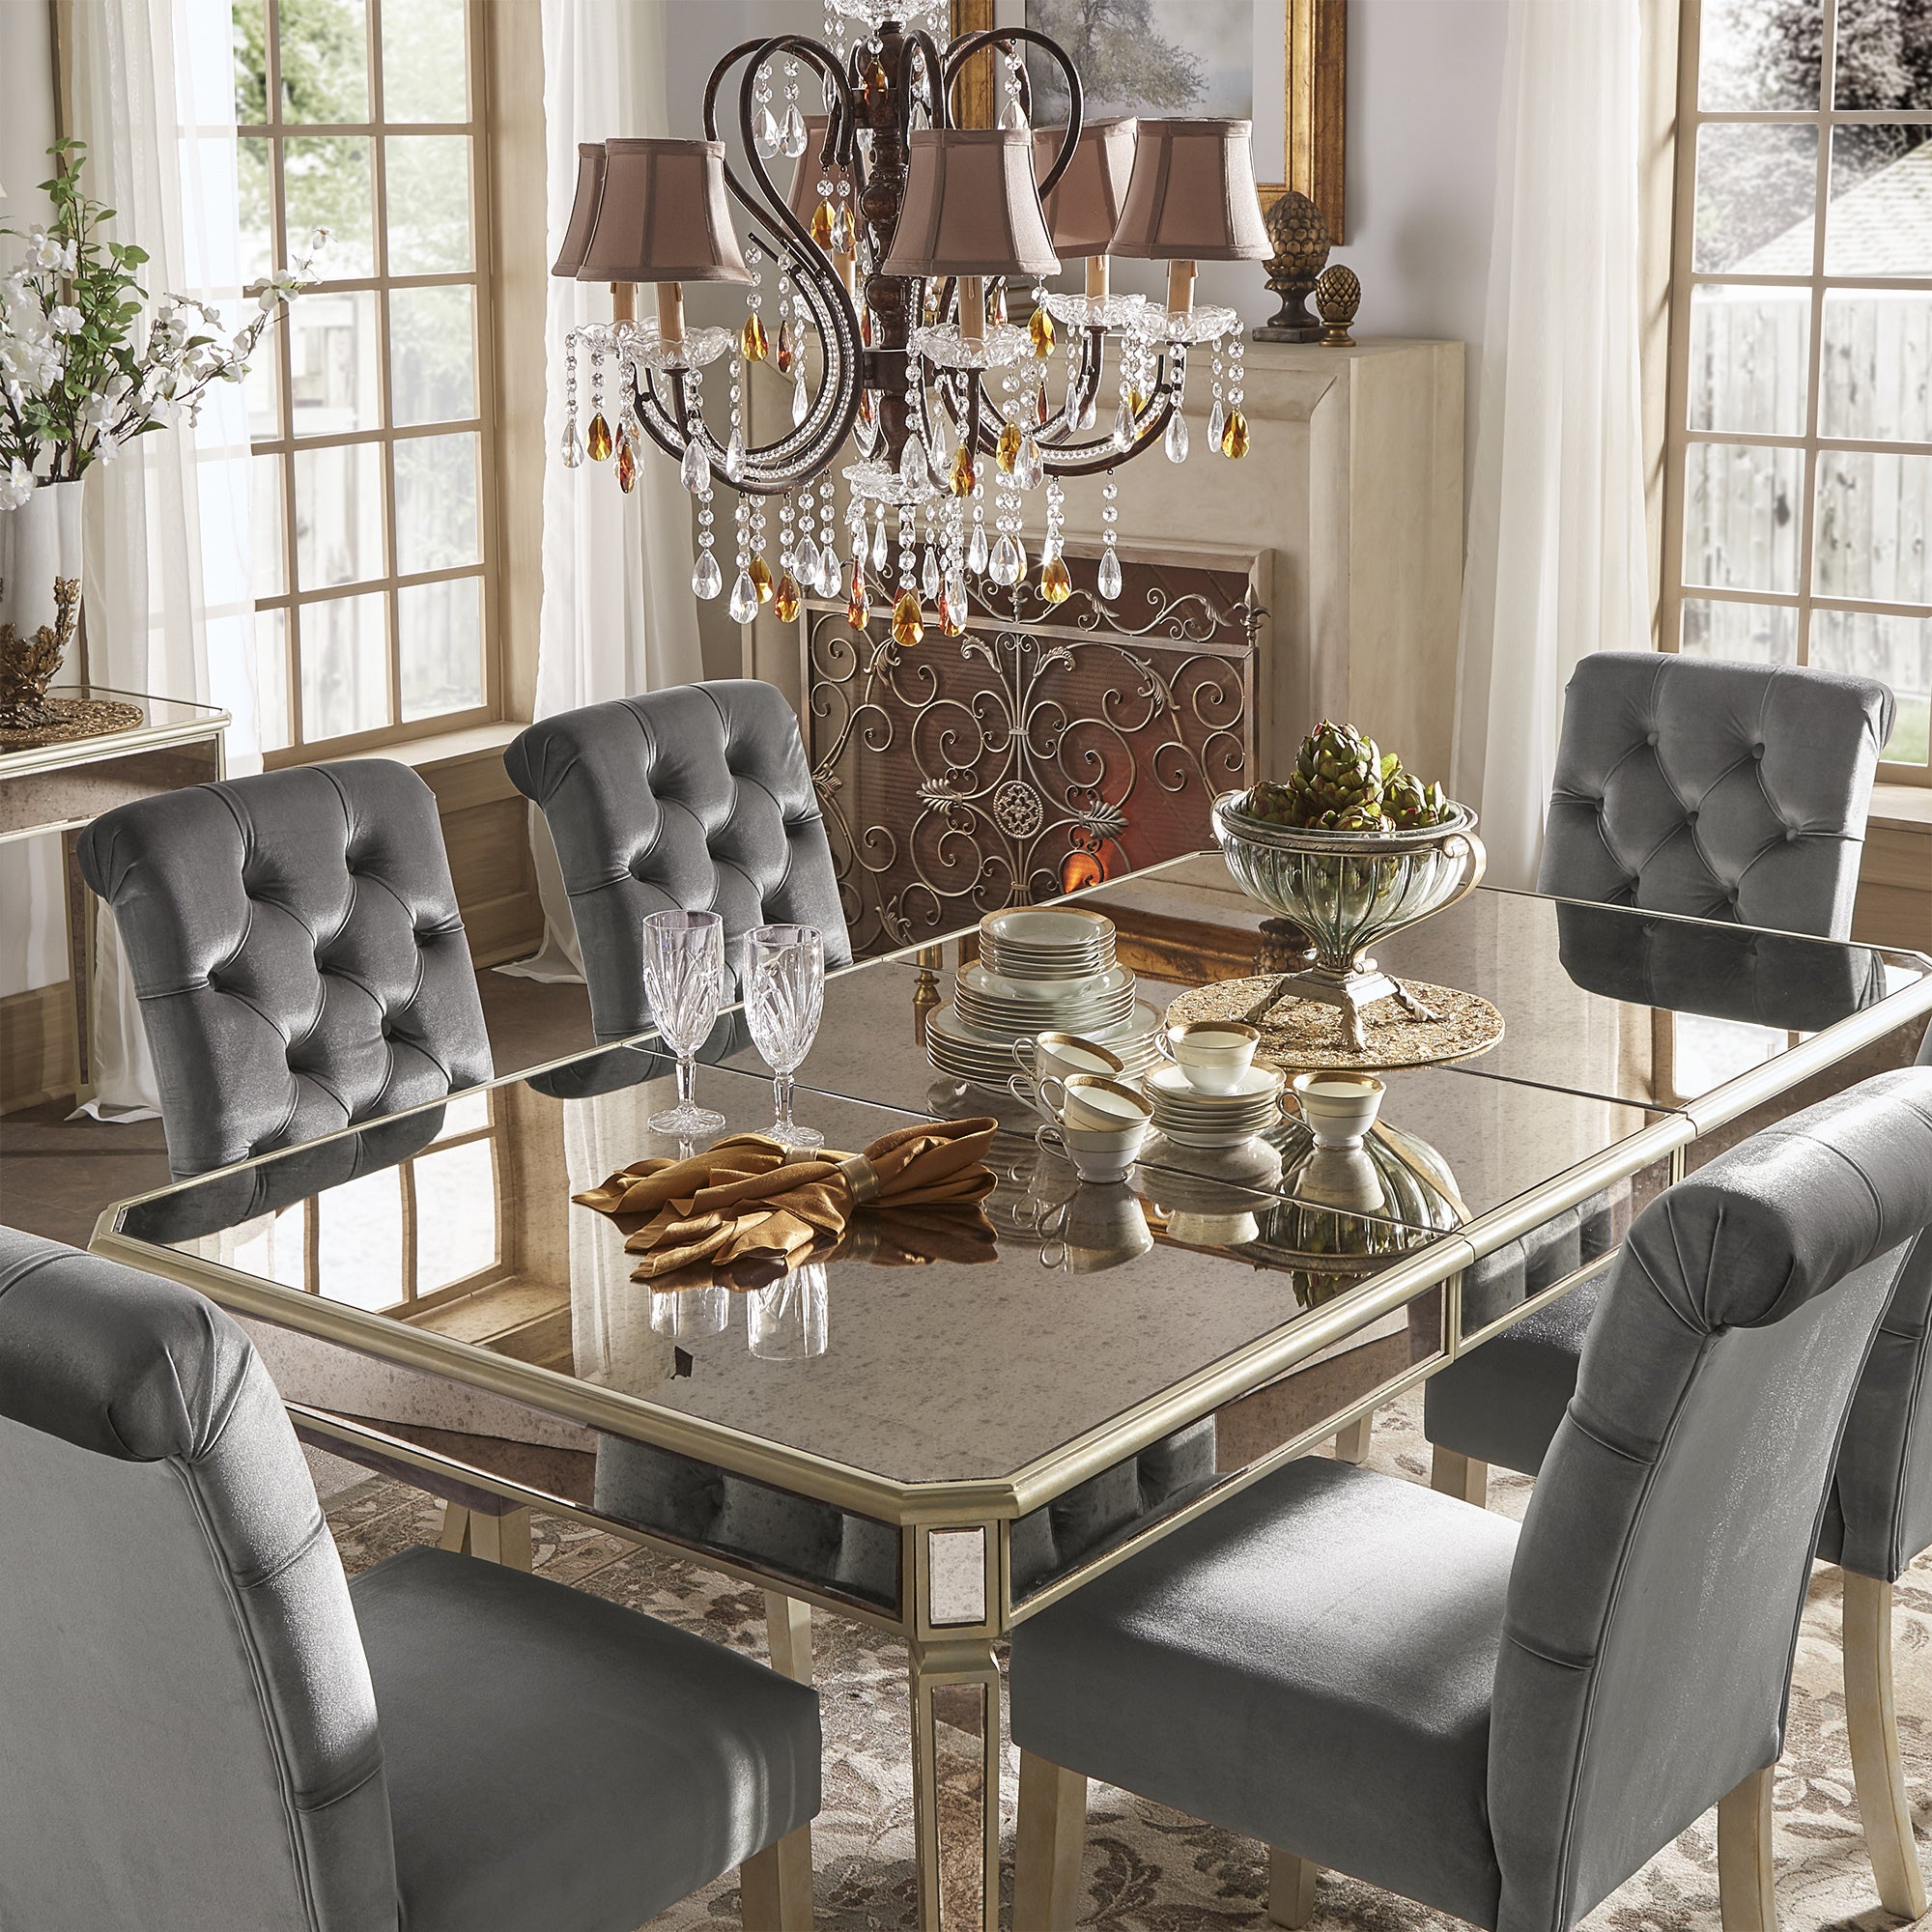 e86101dc6981 Shop Clara Silver Velvet and Antique Gold Mirrored Dining Set by iNSPIRE Q  Bold - Free Shipping Today - Overstock - 17999915